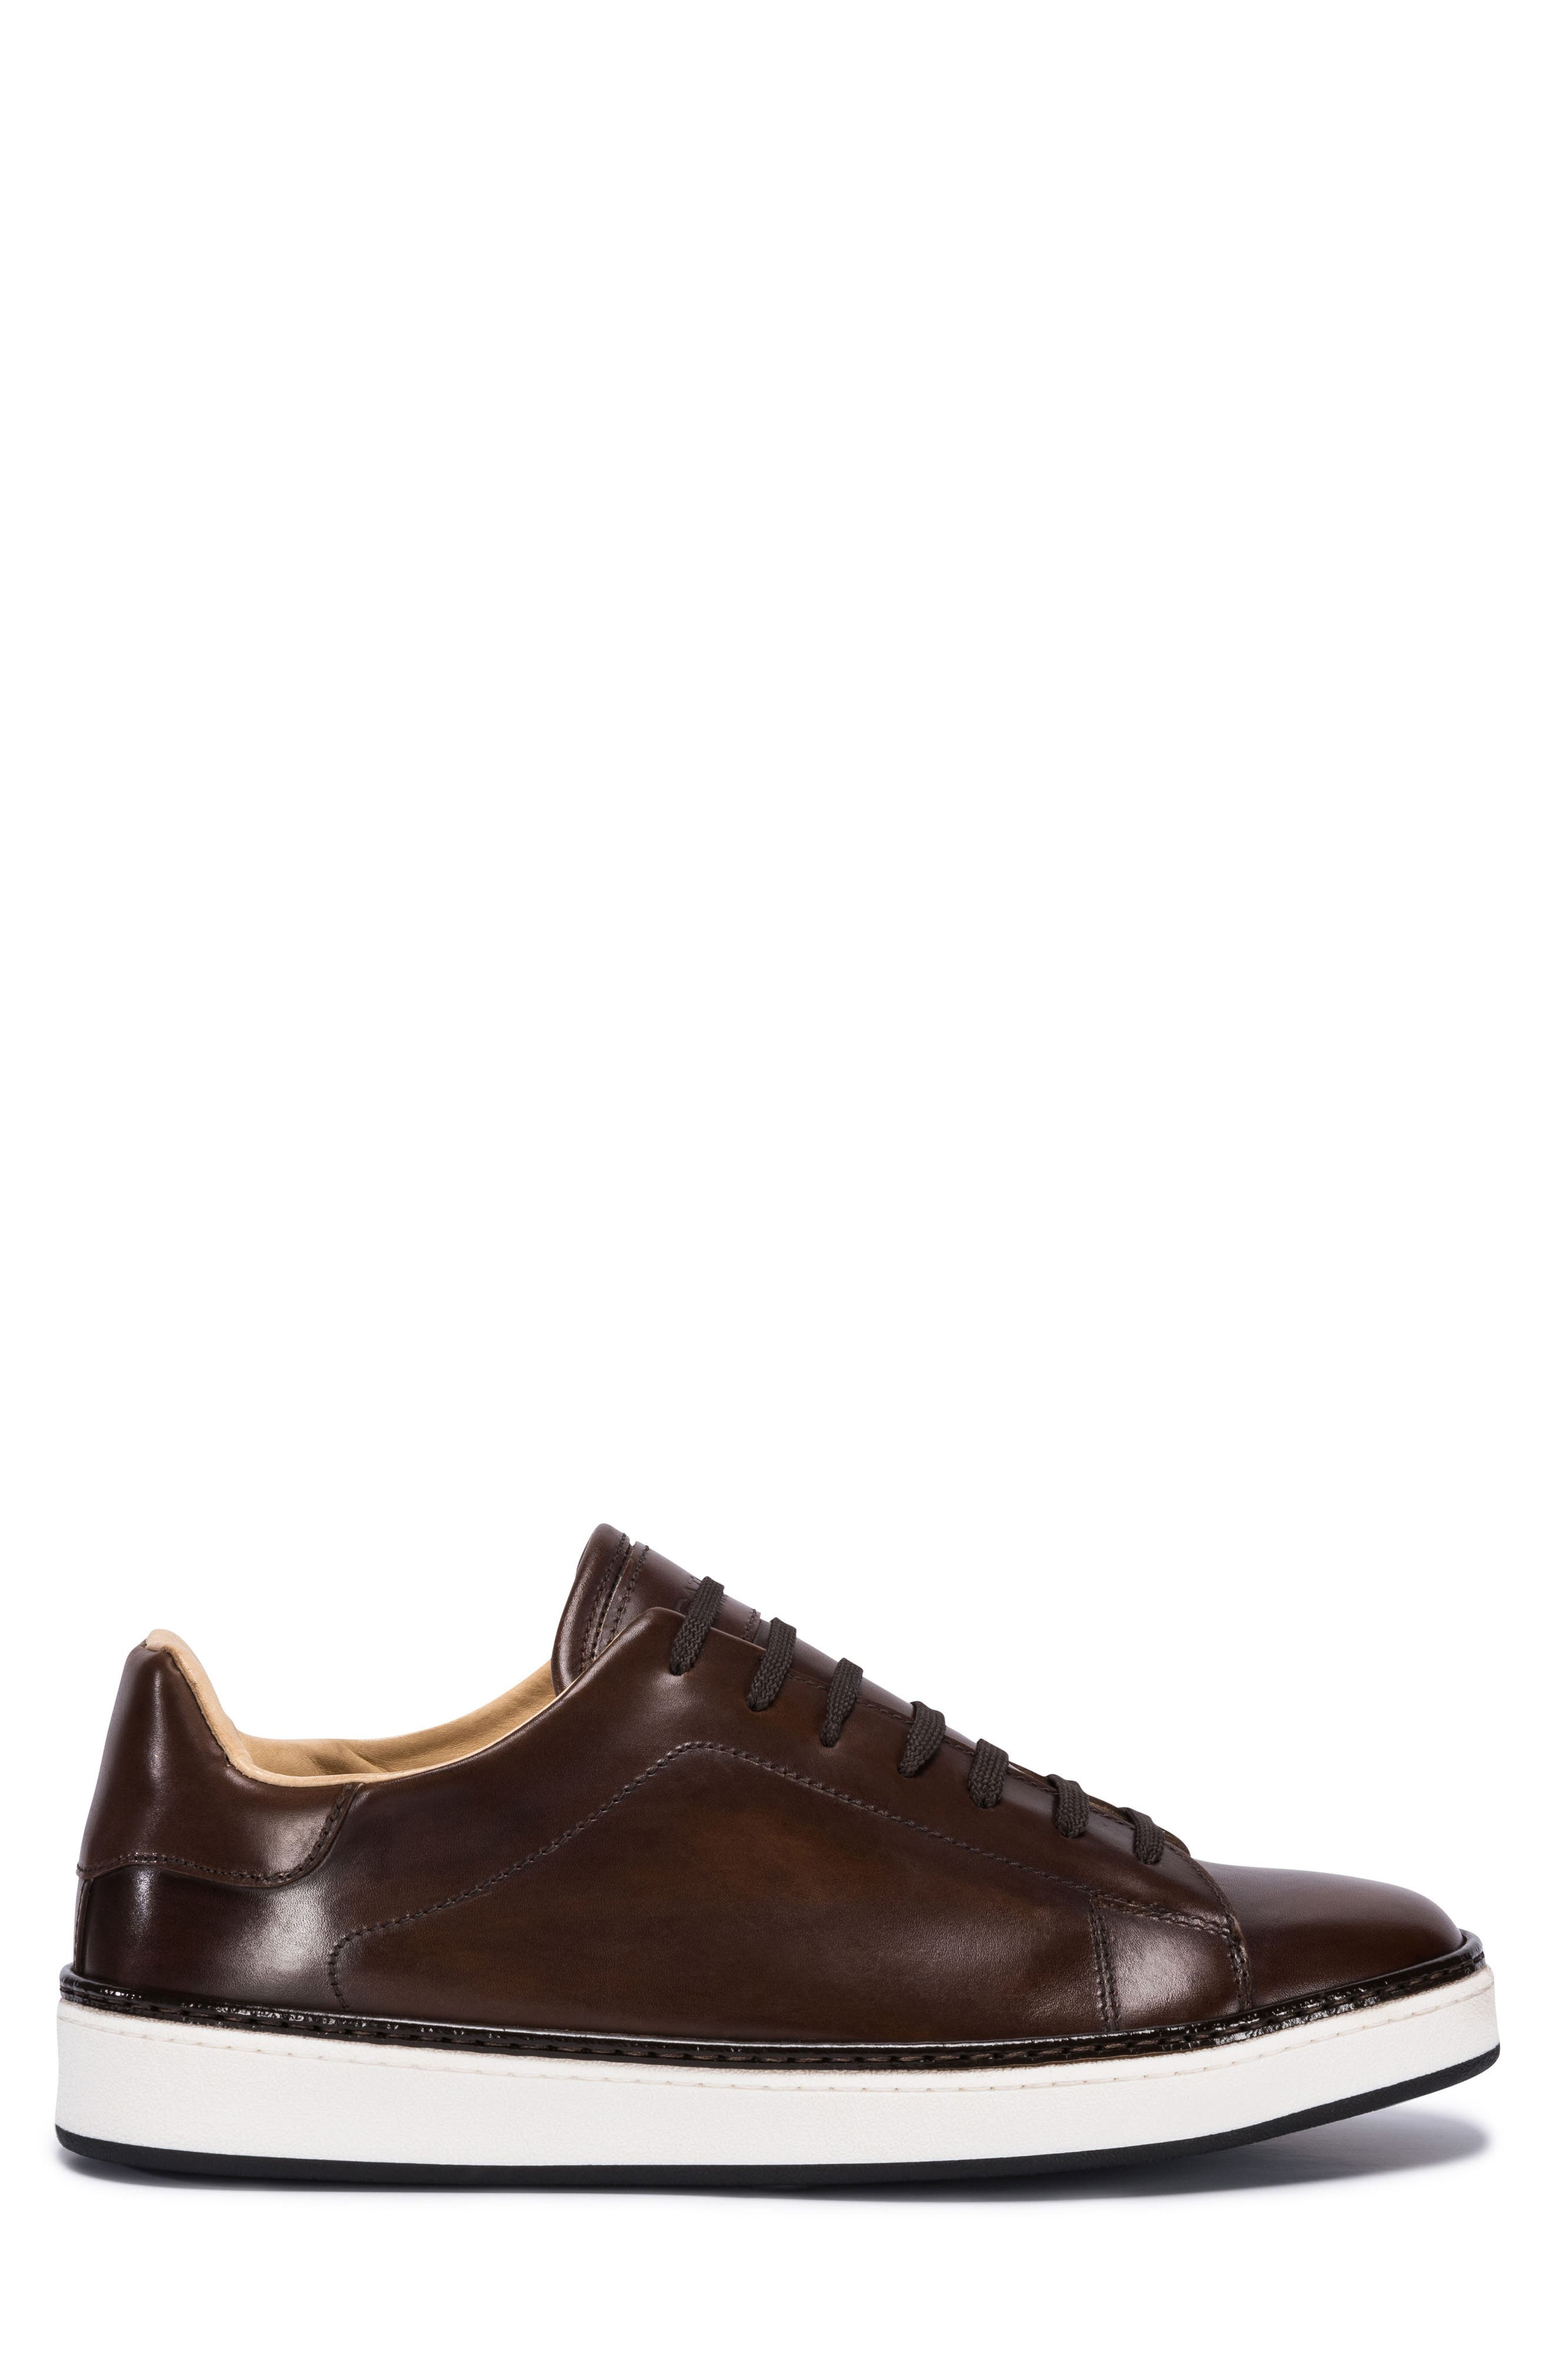 Firenze Low Top Sneaker,                             Alternate thumbnail 3, color,                             Burgundy Leather